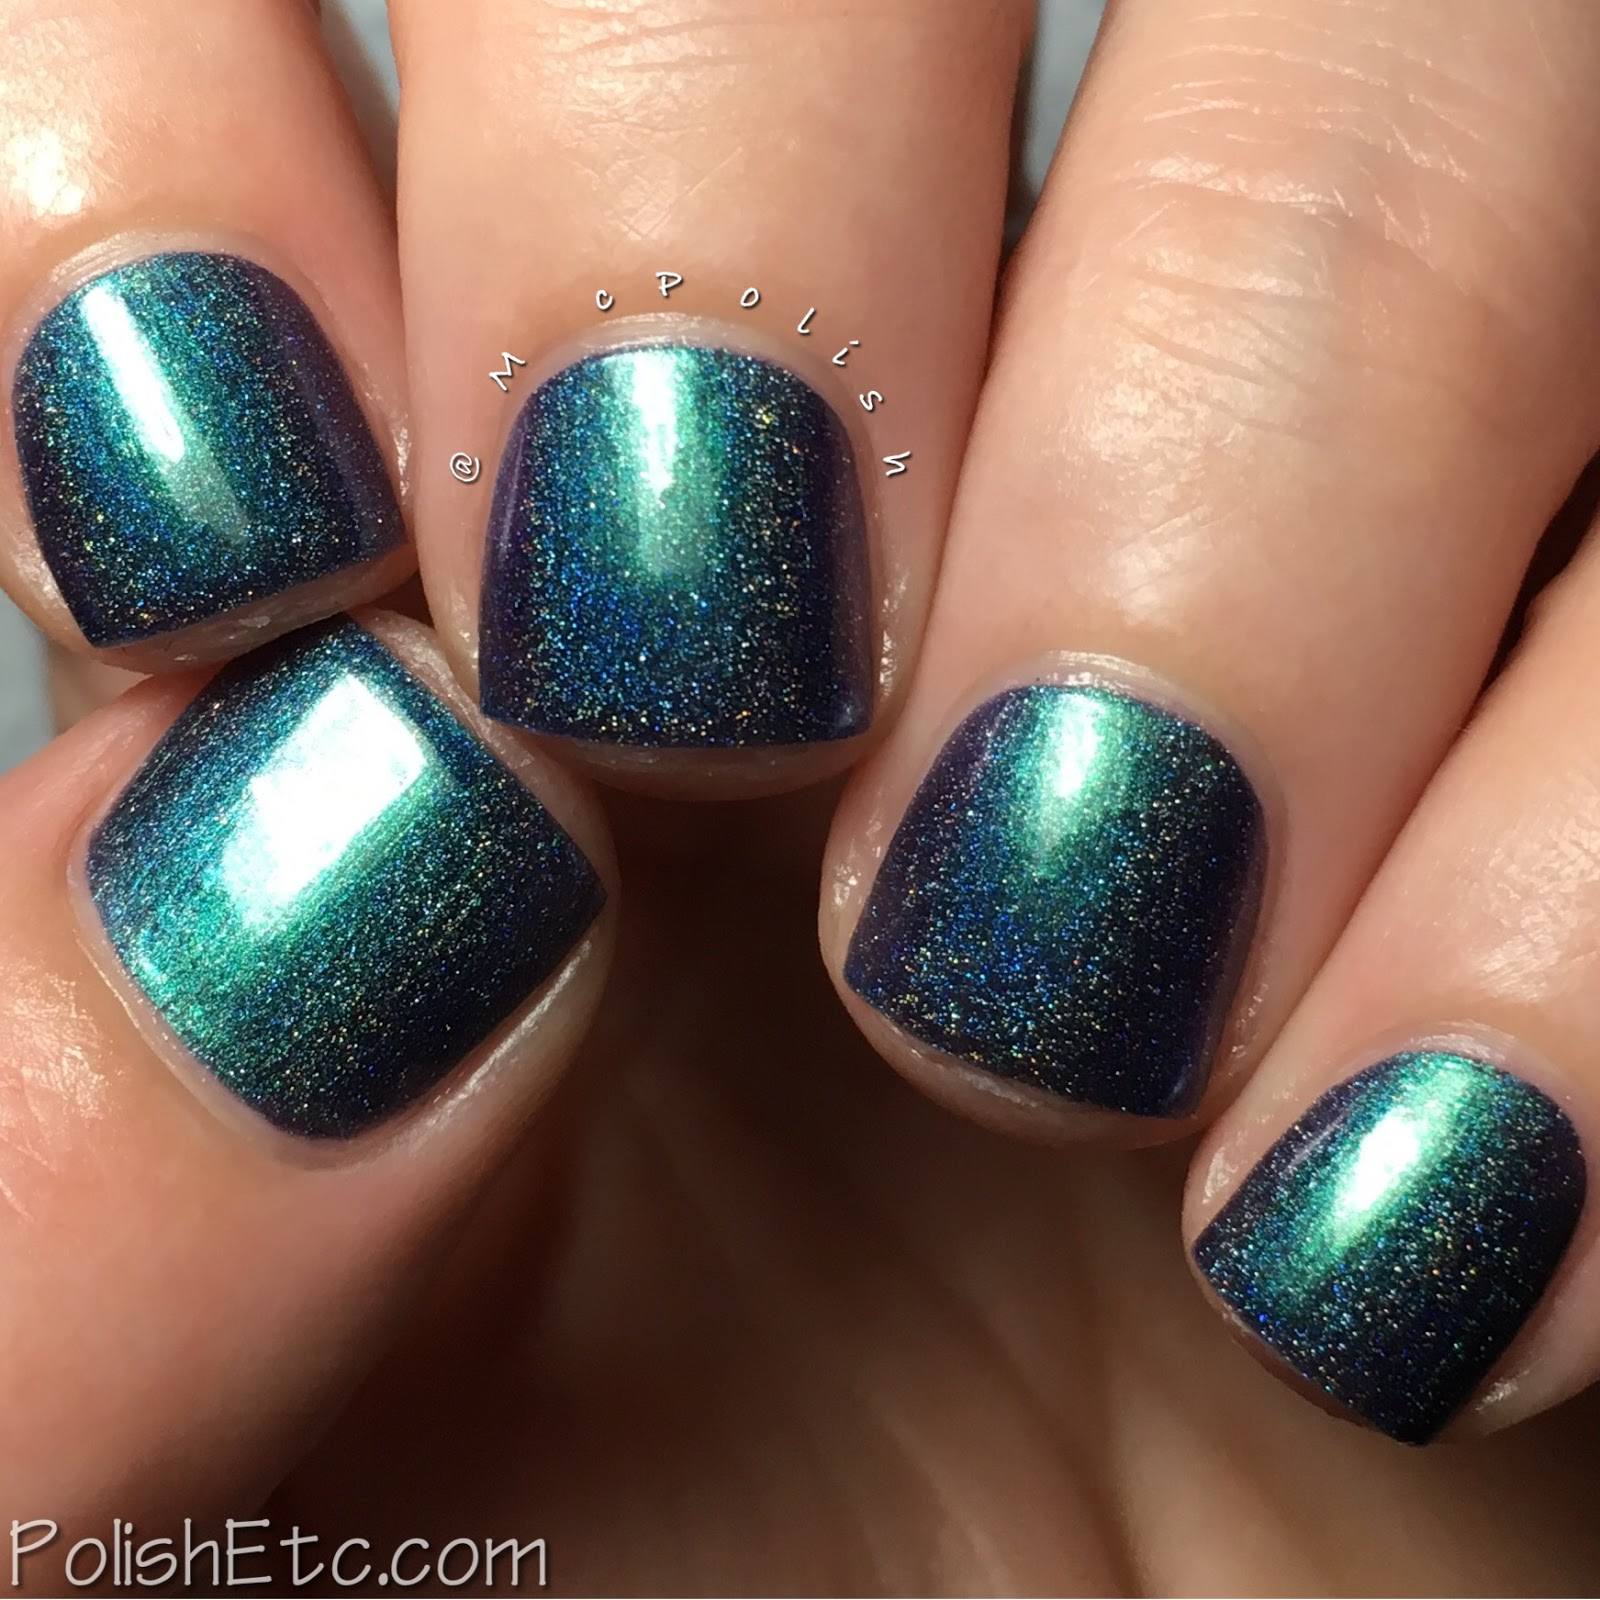 Top Shelf Lacquer - Cocktail Fun Holo'd Collection - McPolish - Schanpp to It (Holo'd)